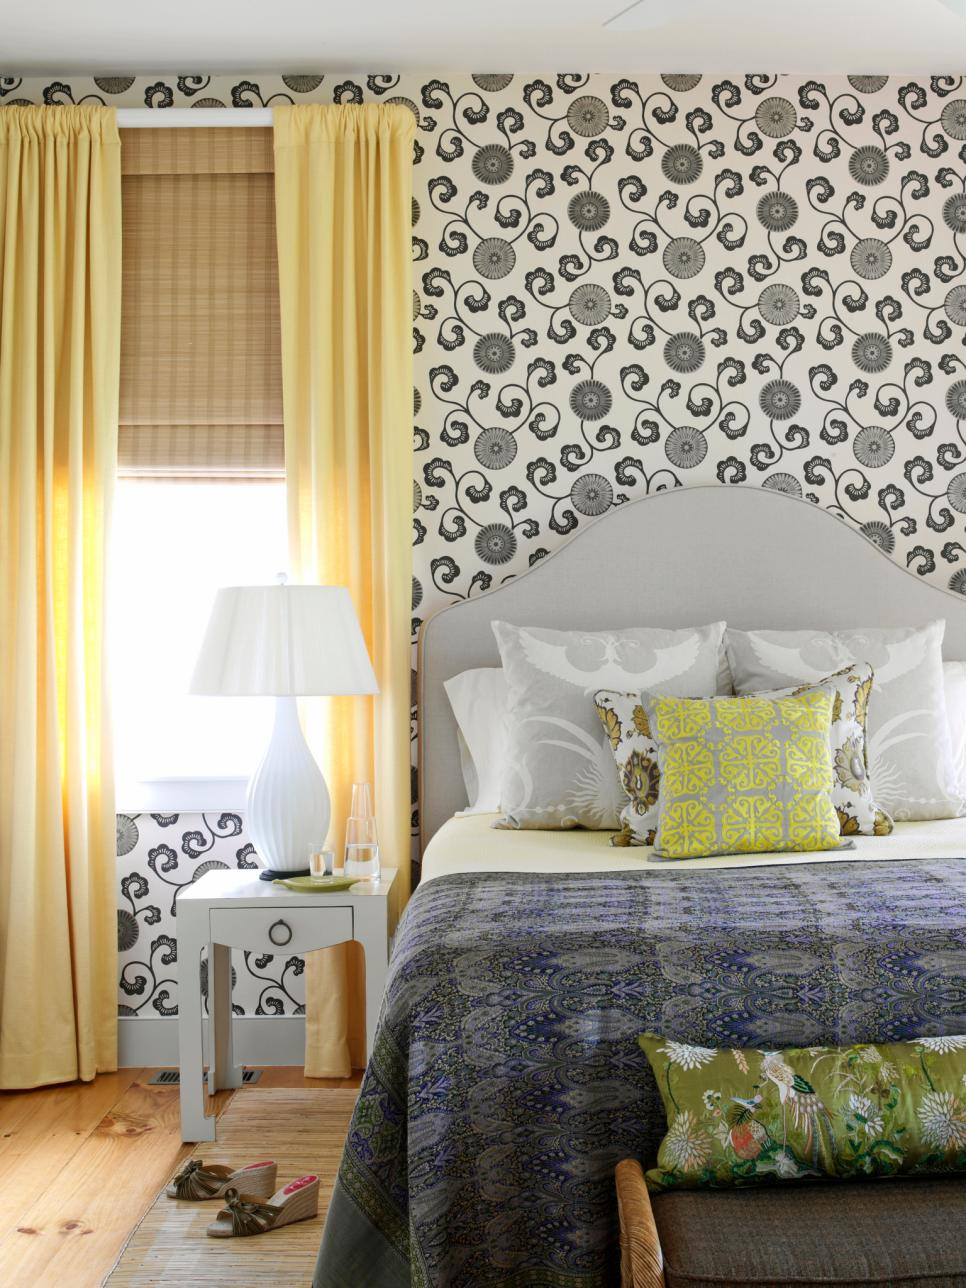 original_tara-seawright-black-white-wallpaper-bedroom-jpg-rend-hgtvcom-966-1288